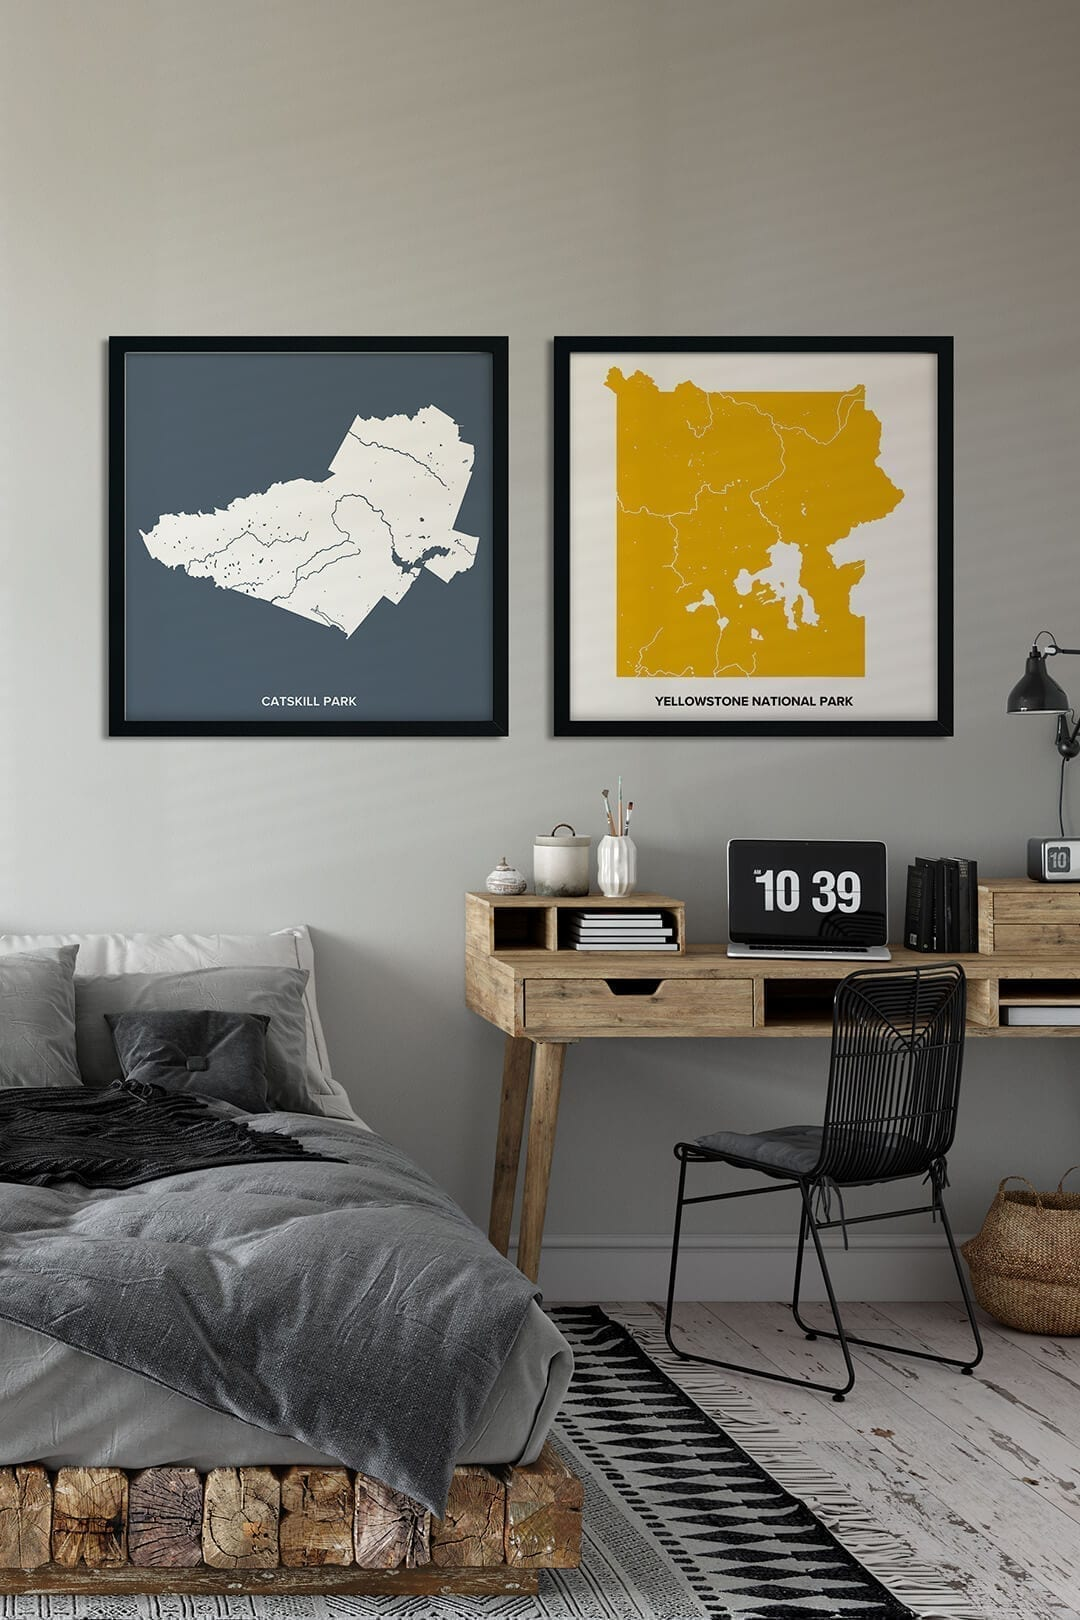 National Parks Maps in square shape and black frames decorating grey painted wall